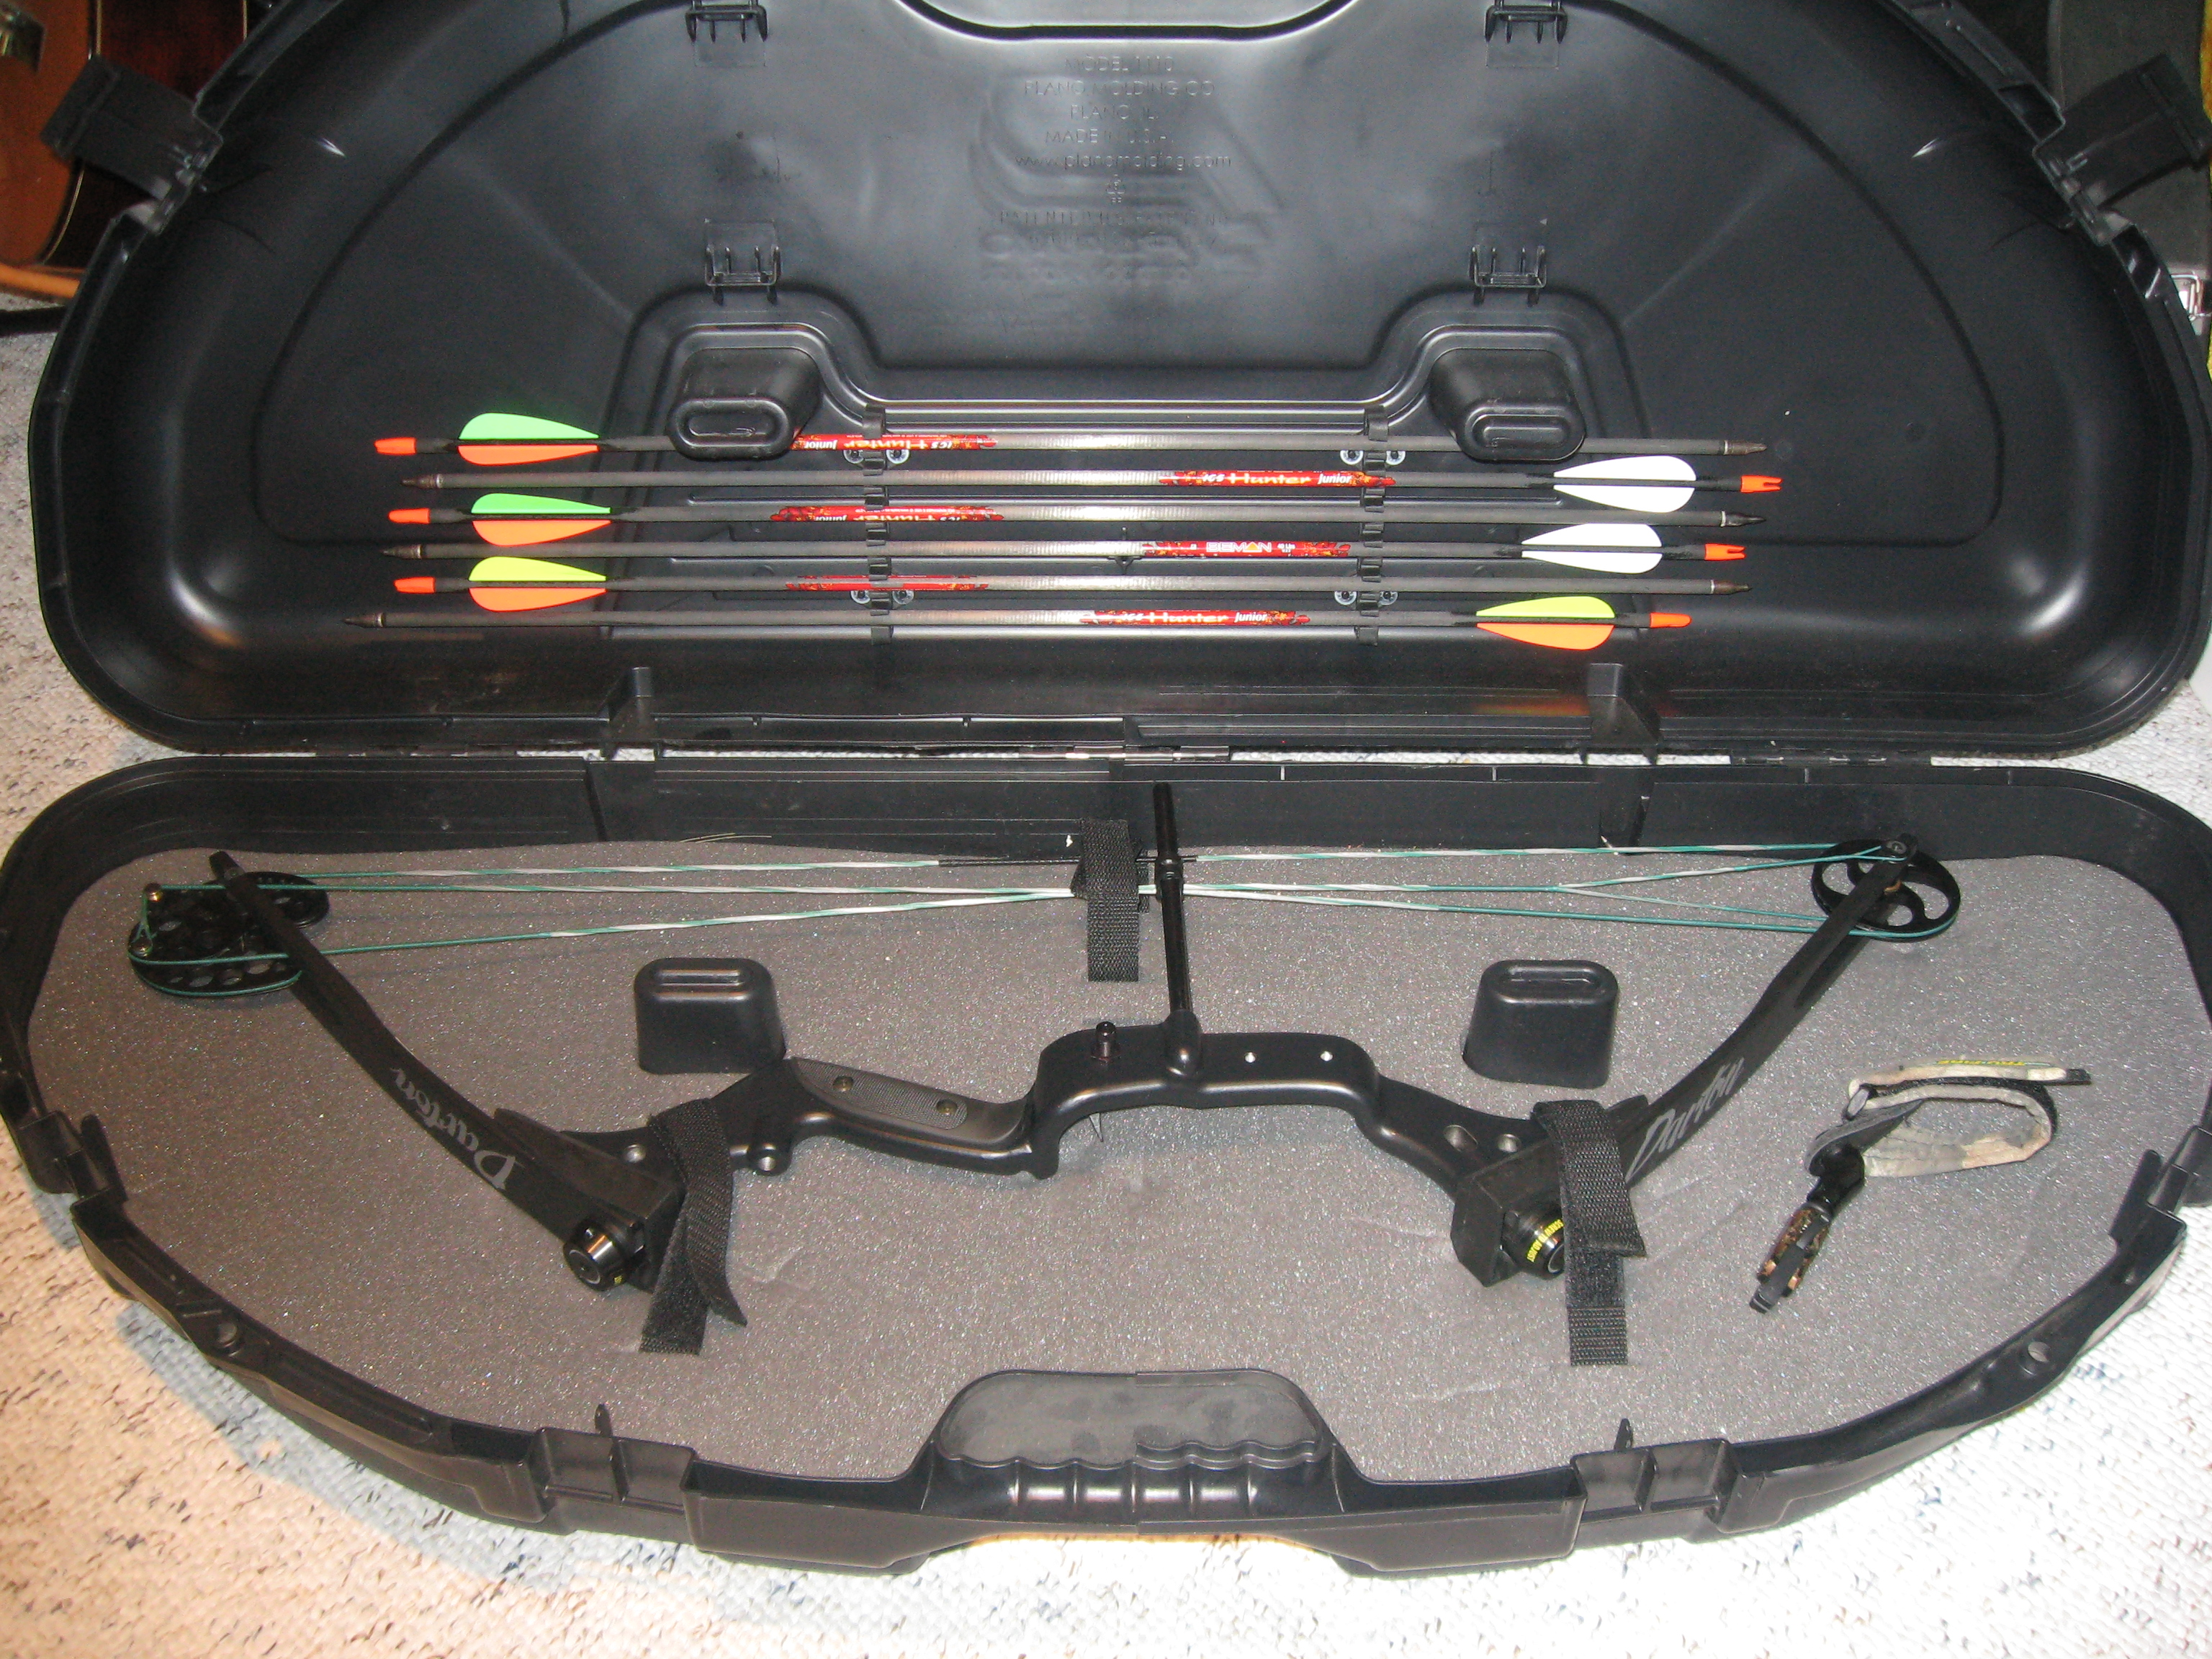 FOR SALE: Darton-Ranger 1 Youth Compound Bow